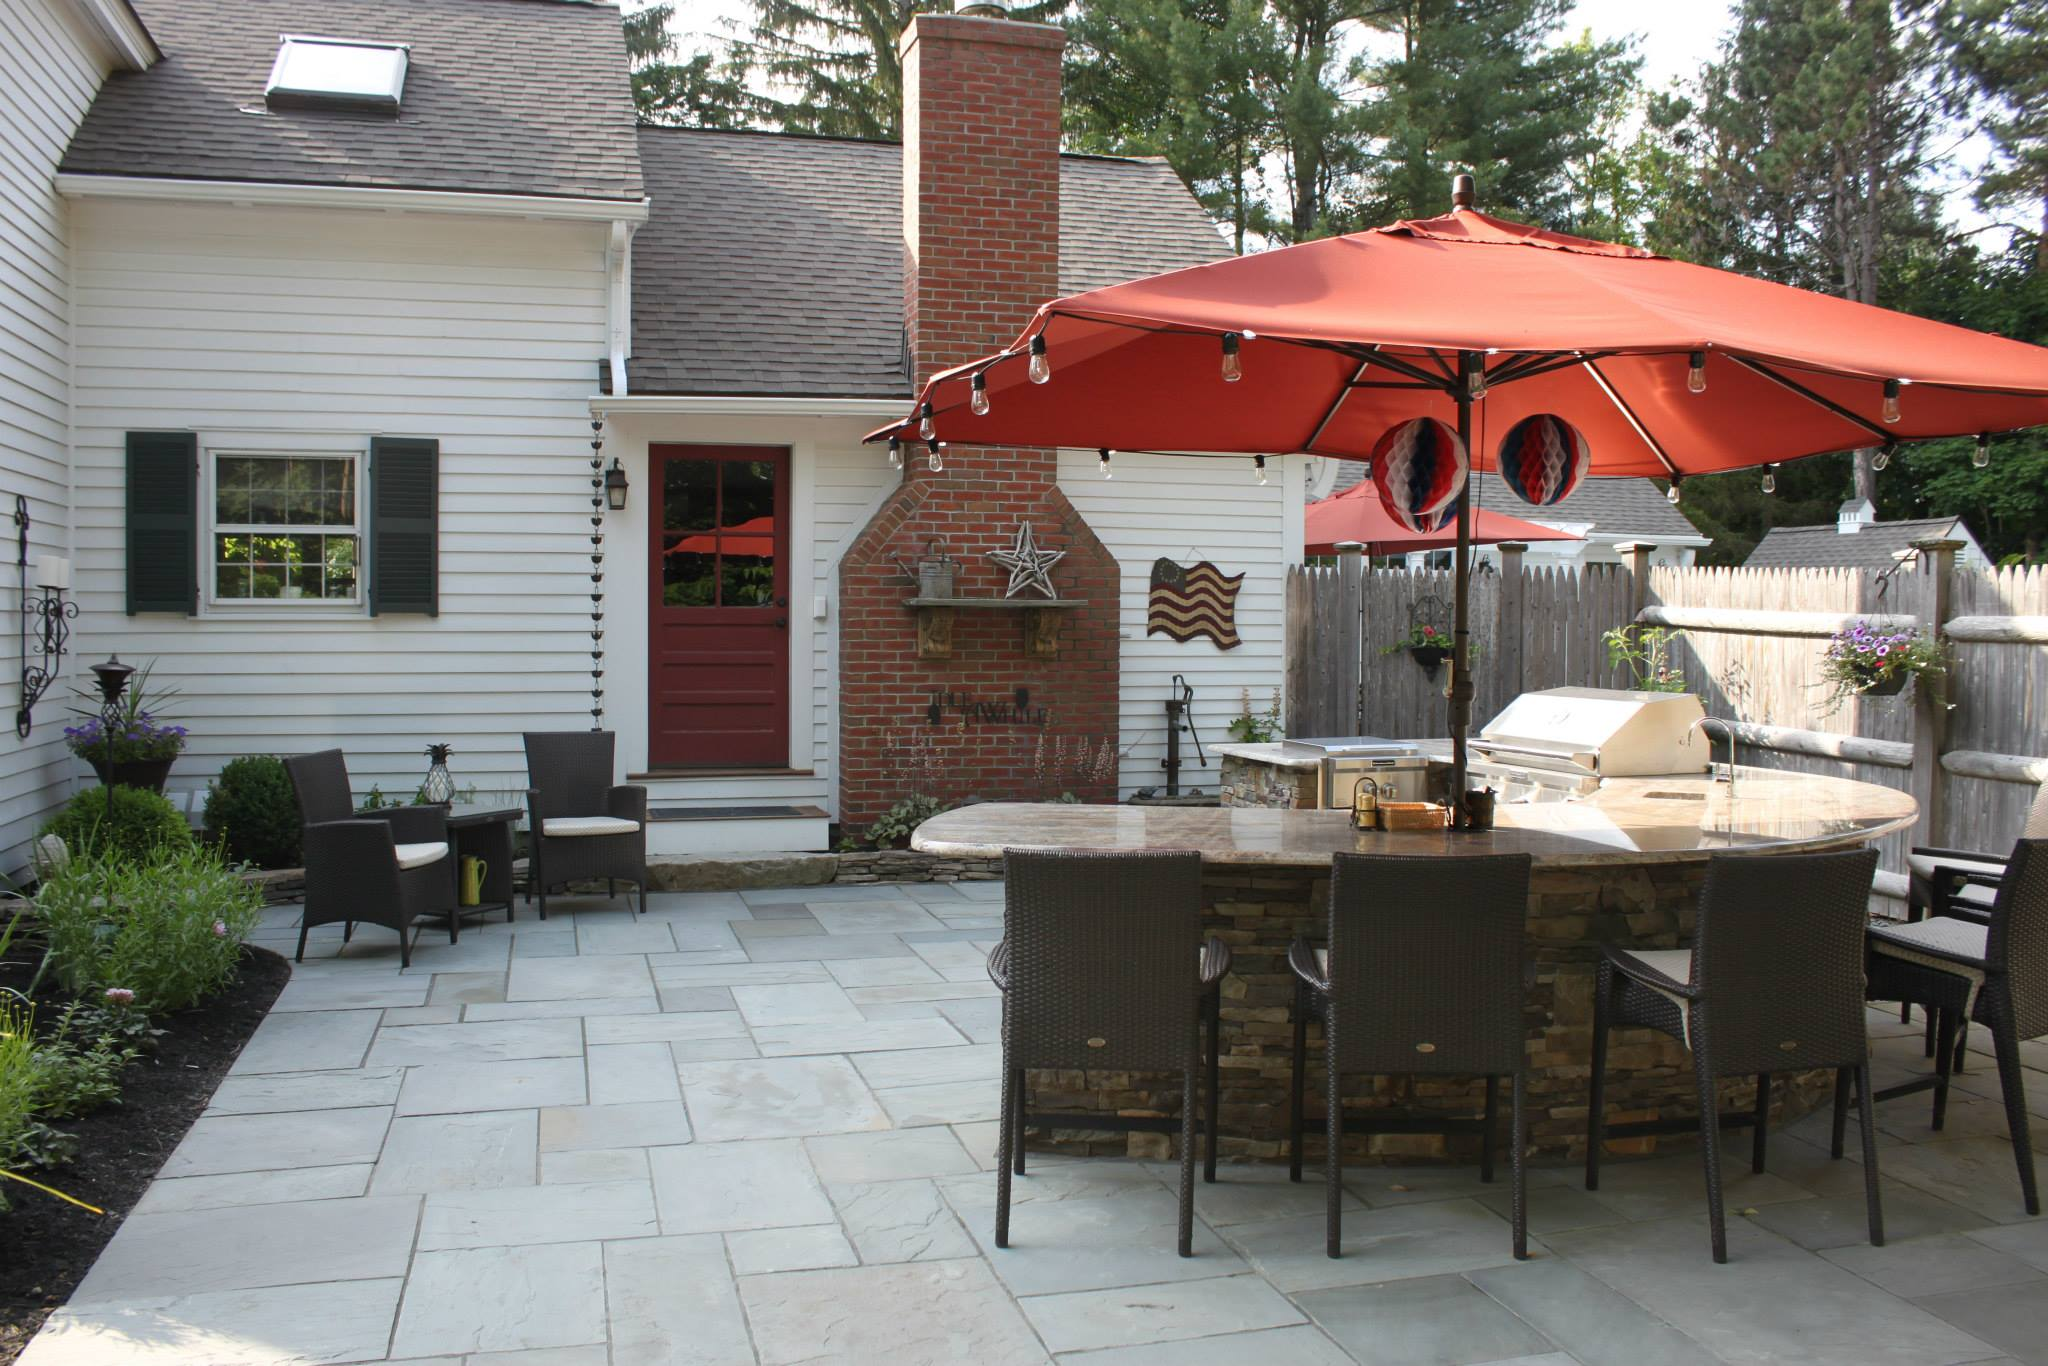 Beautify Your Home's Exterior with Brick and Stone Masonry in Waltham, MA